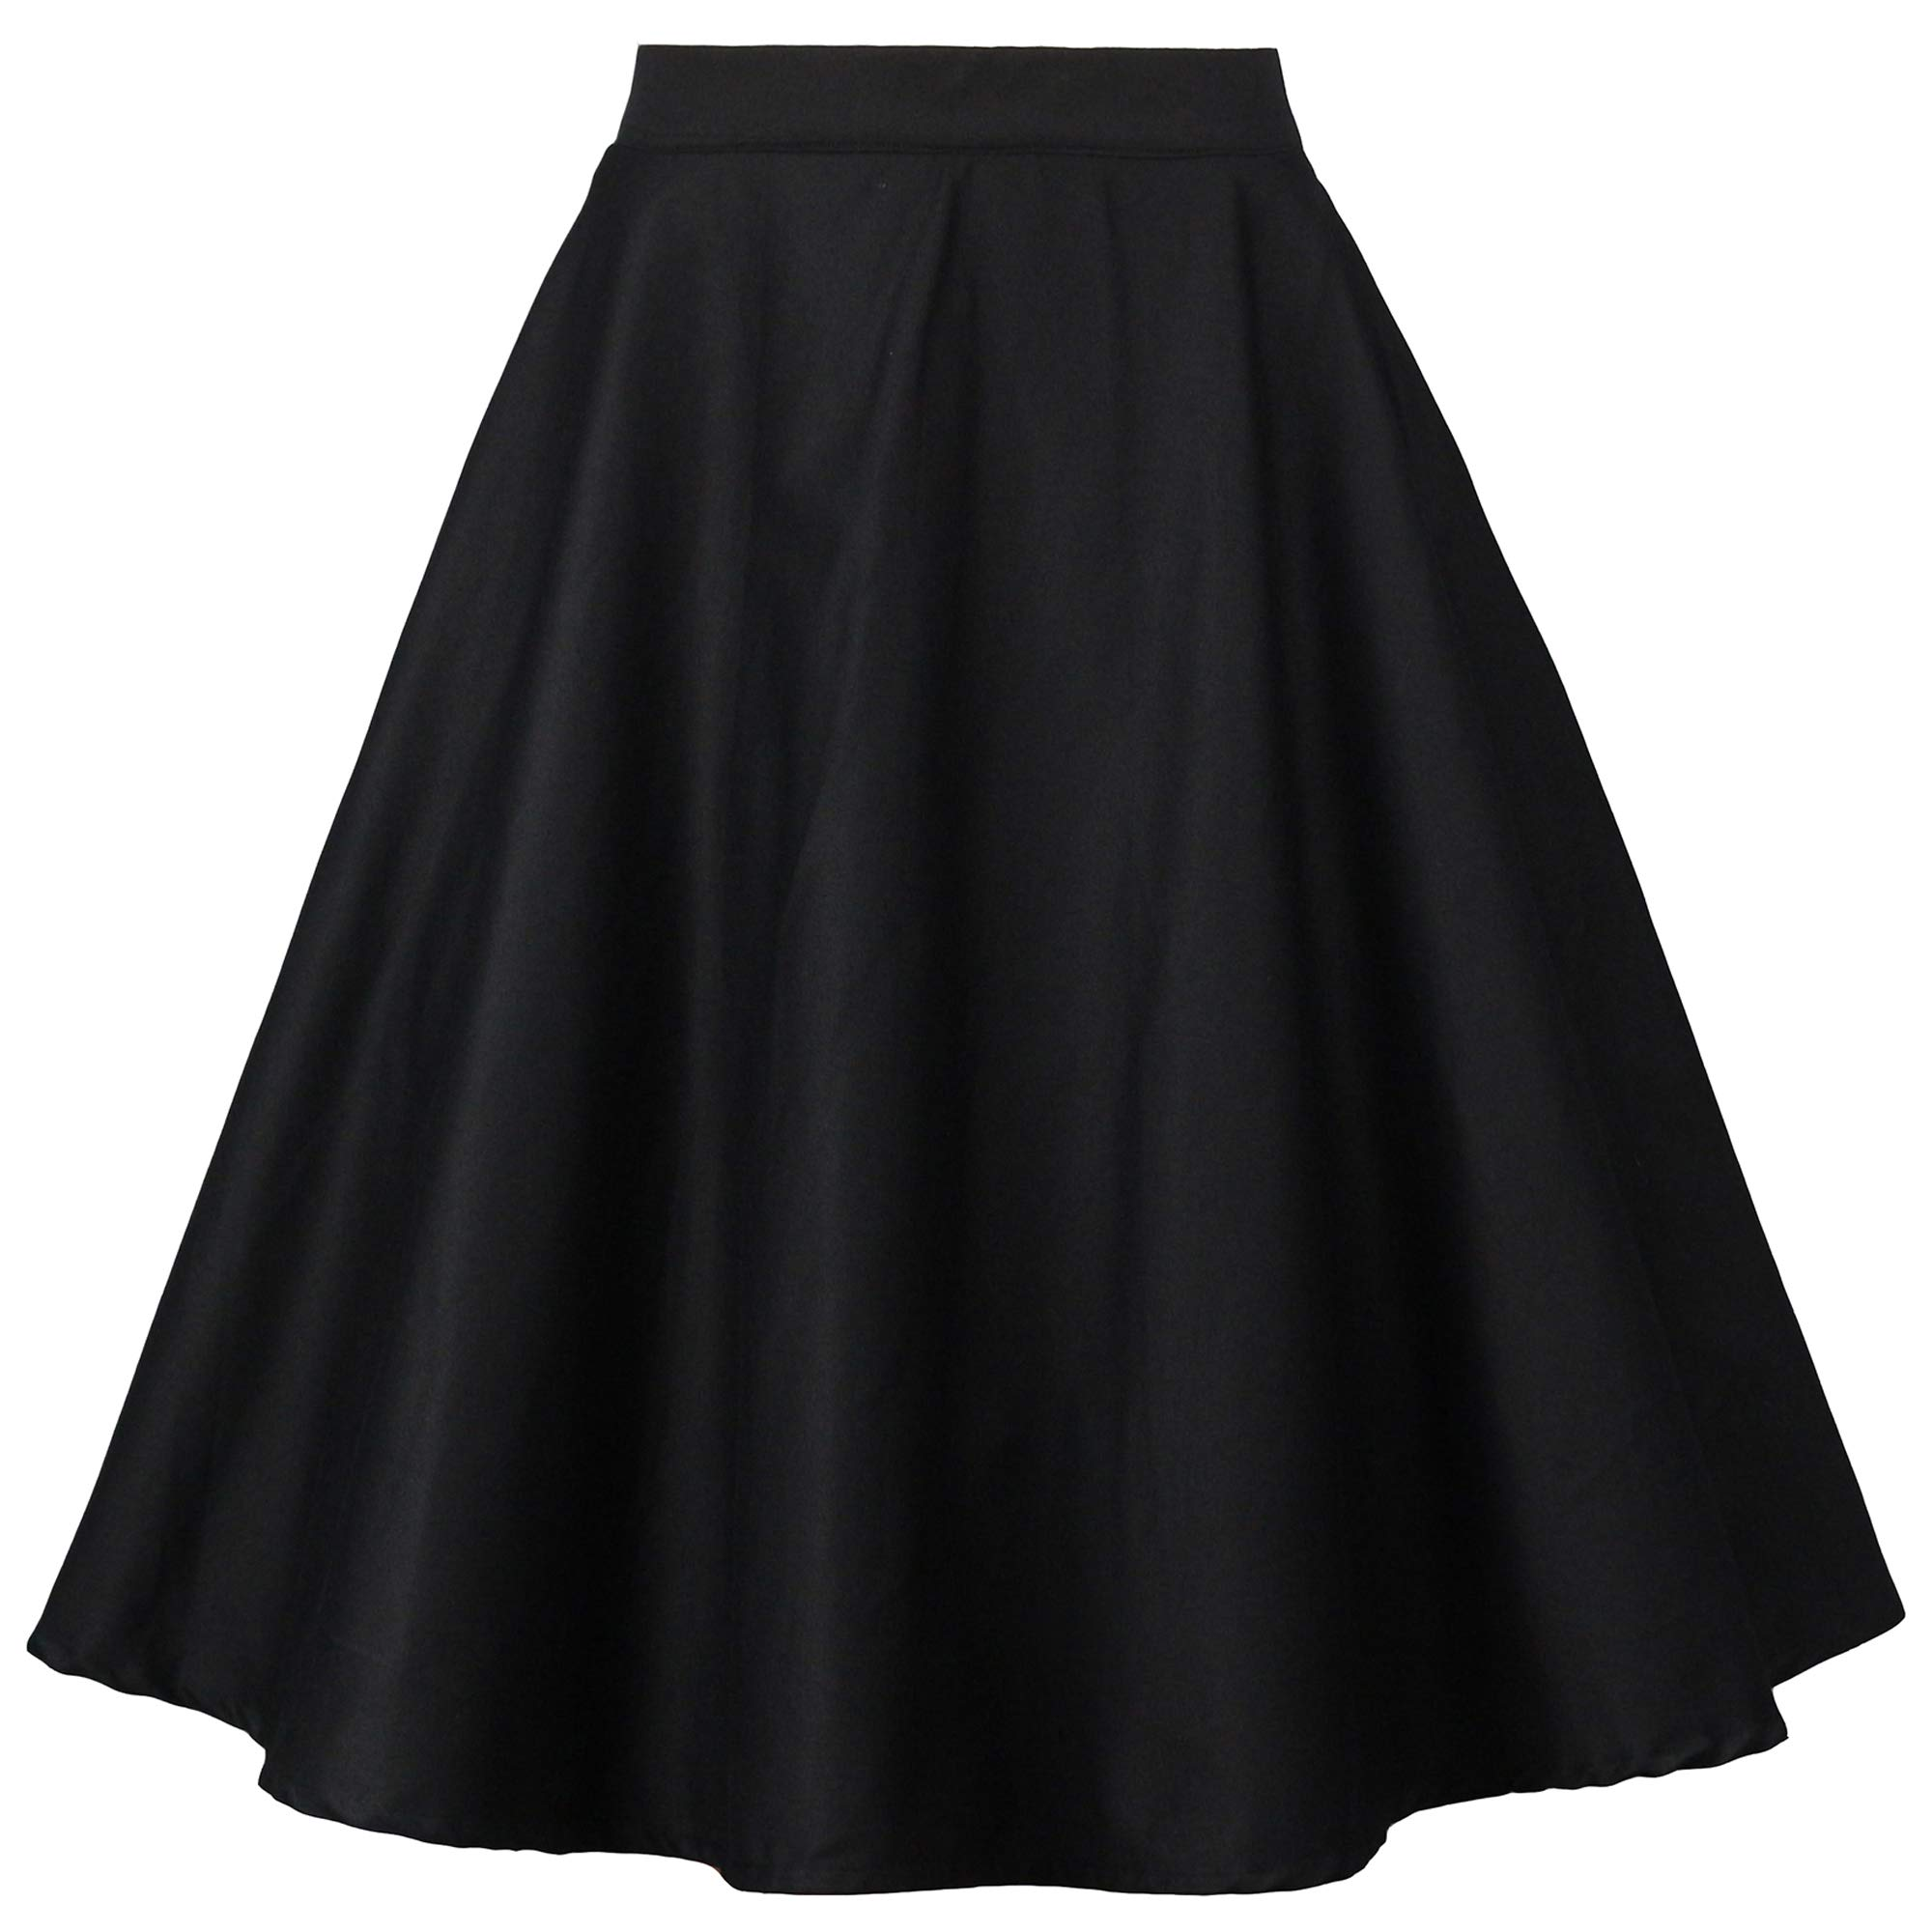 Tailloday 1950's Vintage Full Circle Pleated Floral A Line Midi Skirt